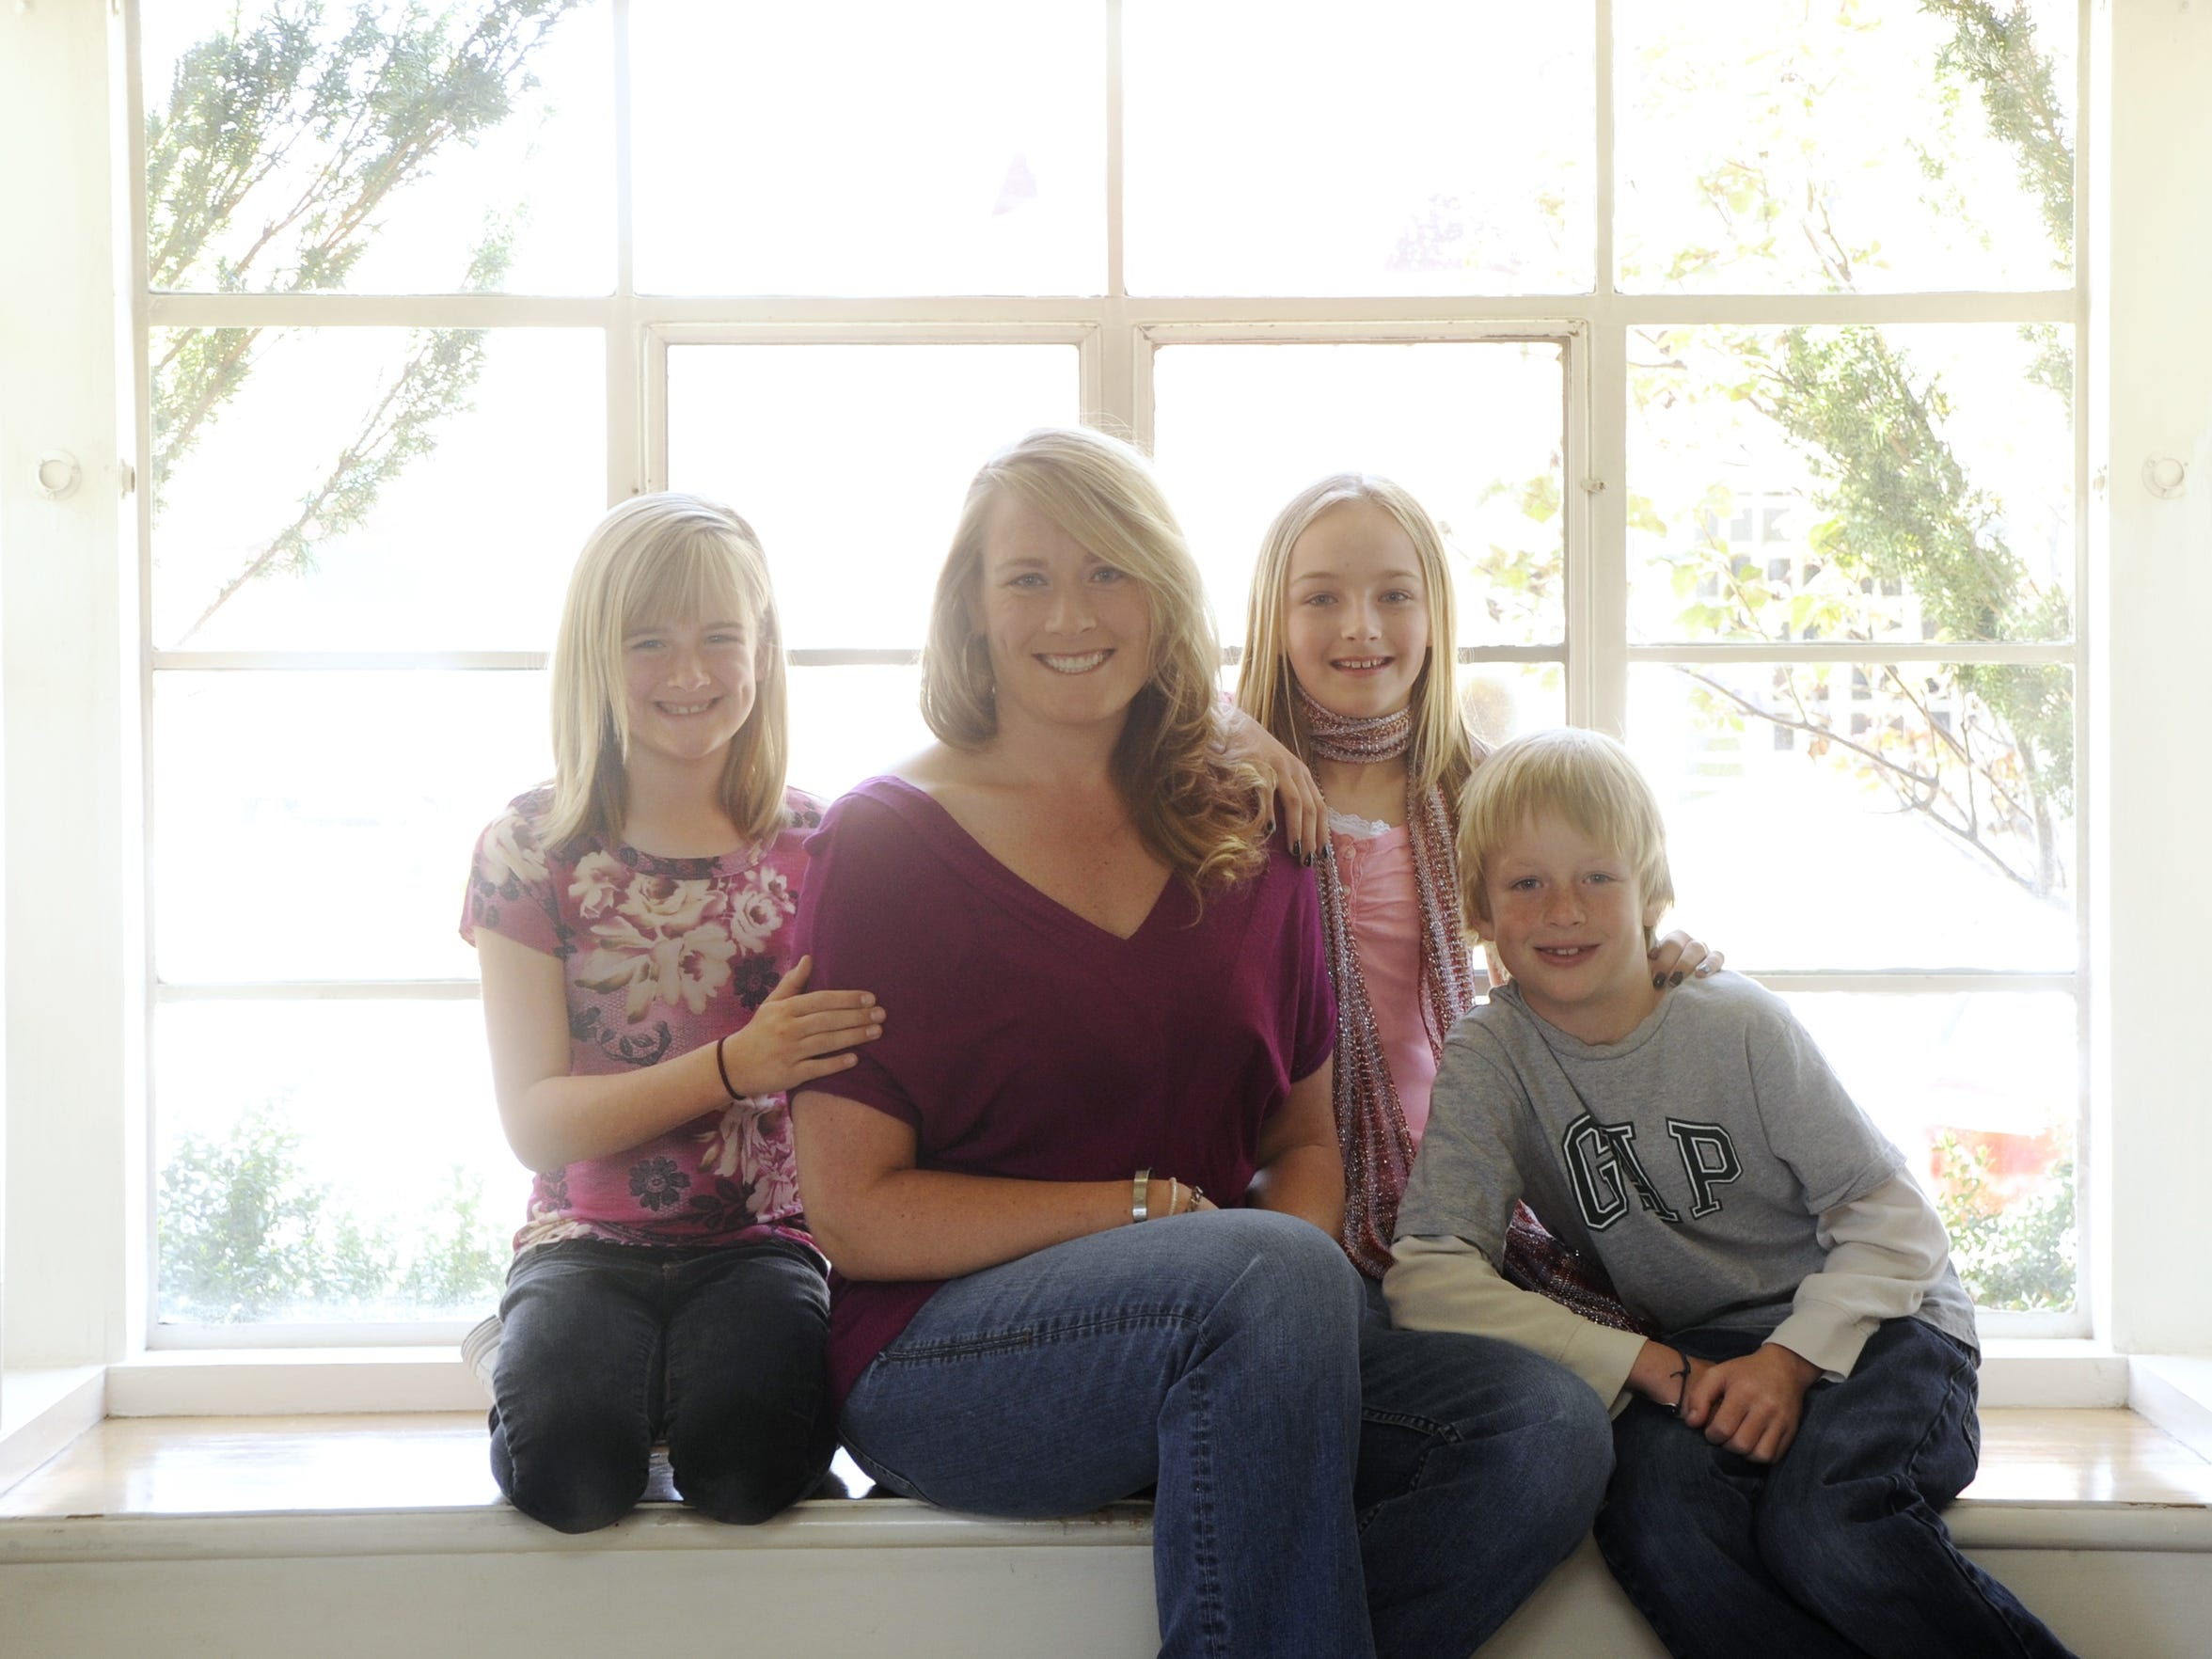 Emily Reese of Reno sits with her children Kate, 9, Maddie, 11, and Thomas, 8, at their home on May 1, 2011. Reese, who was recently diagnosed with colon cancer, was honored by her daughters who wrote haikus for the Reno Gazette-Journal Mother's Day haiku contest.